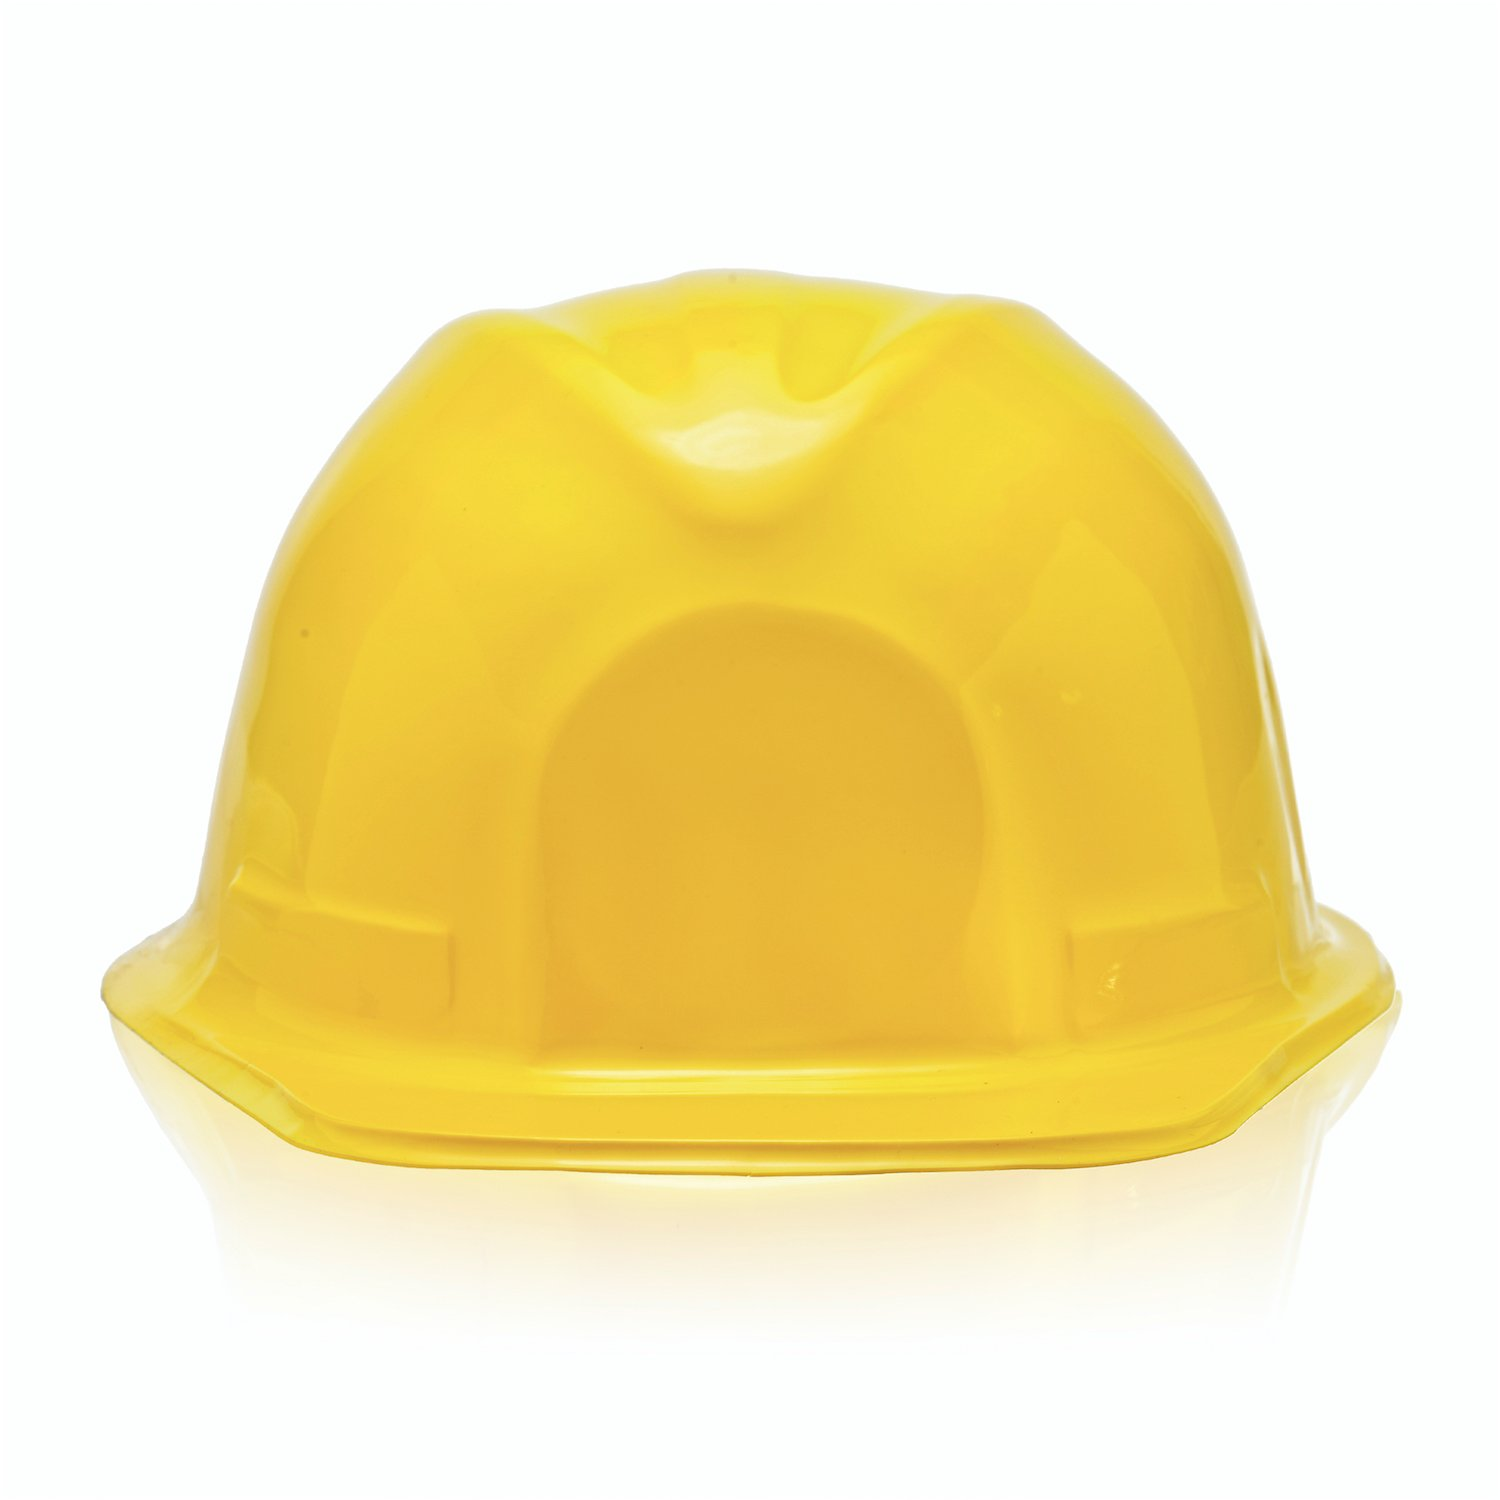 Bottles N Bags 24 Pack of Child Size Plastic Yellow Construction Hats for Young Builders by by Bottles N Bags (Image #6)